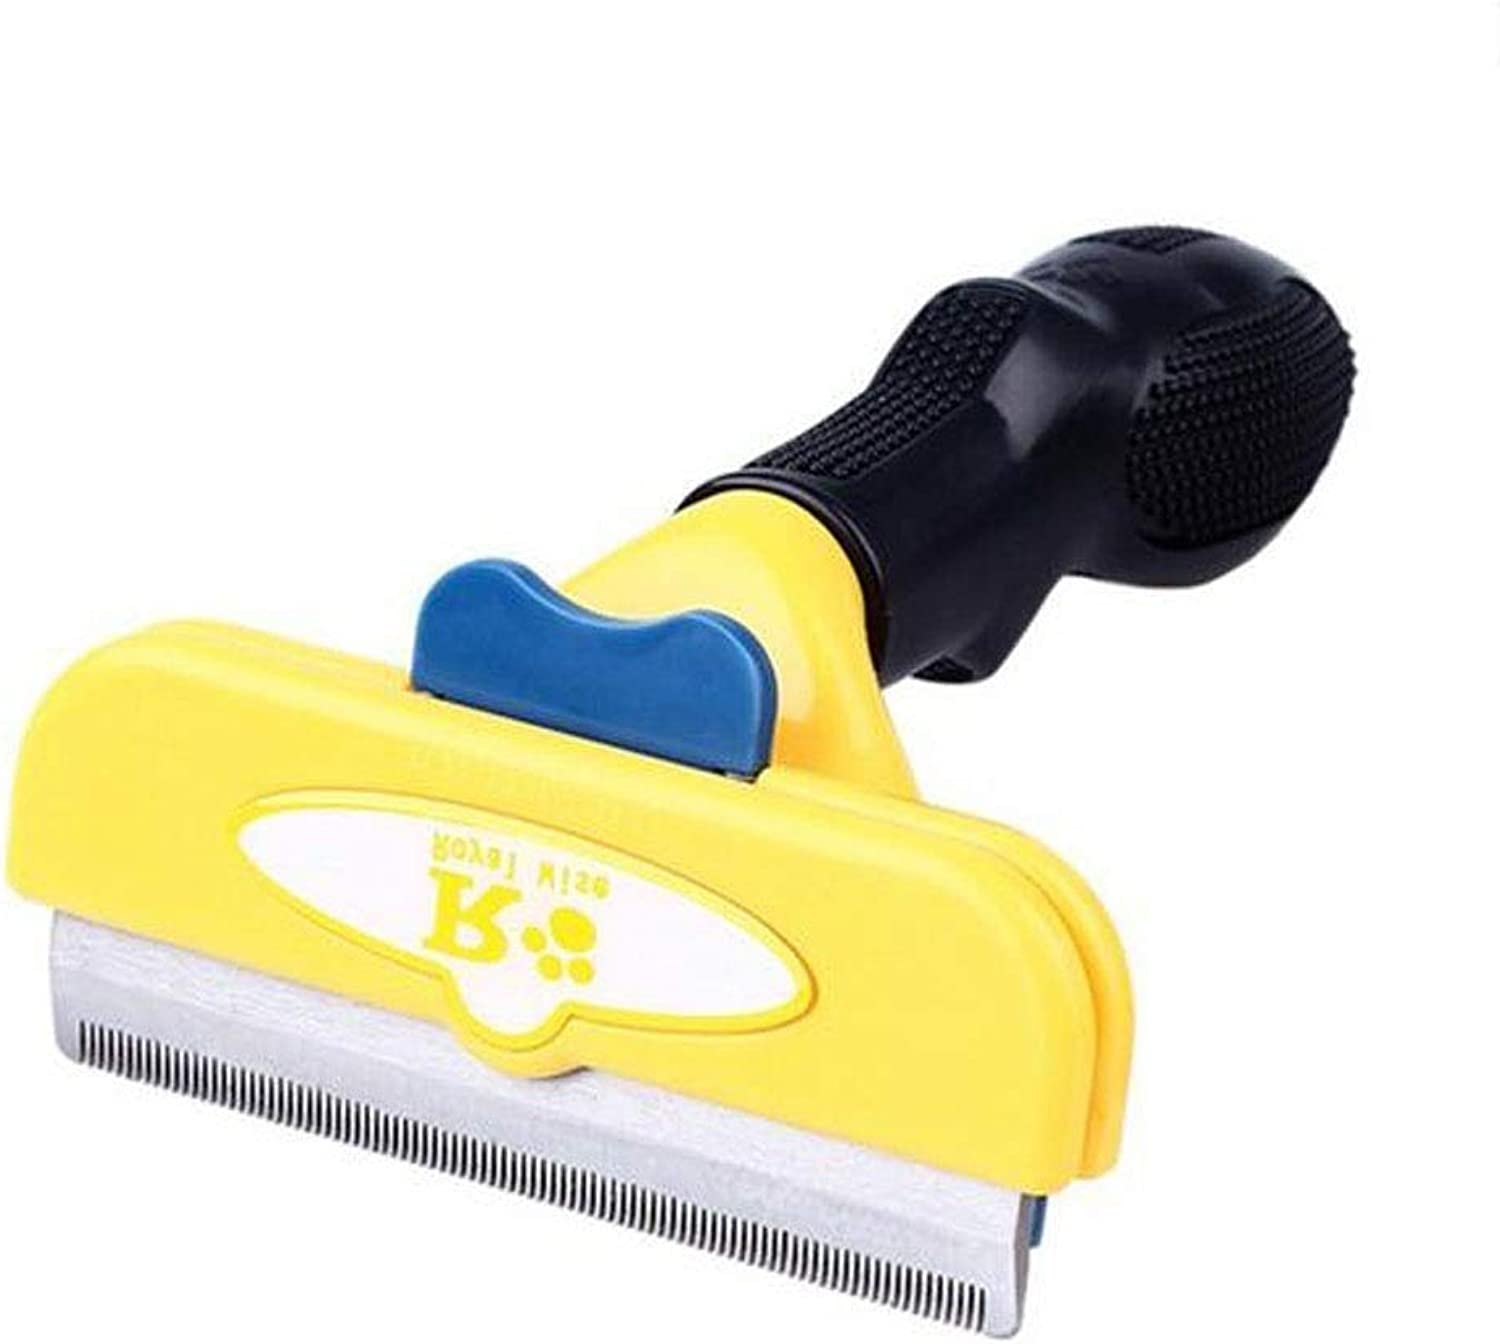 Dog Brush & Cat Brush,Deshedding BrushDog Hair & Cat Hair Shedding ToolEffective Grooming Tool and Reduces Pet Hair Shed by Up to 95%,Best Grooming TooI